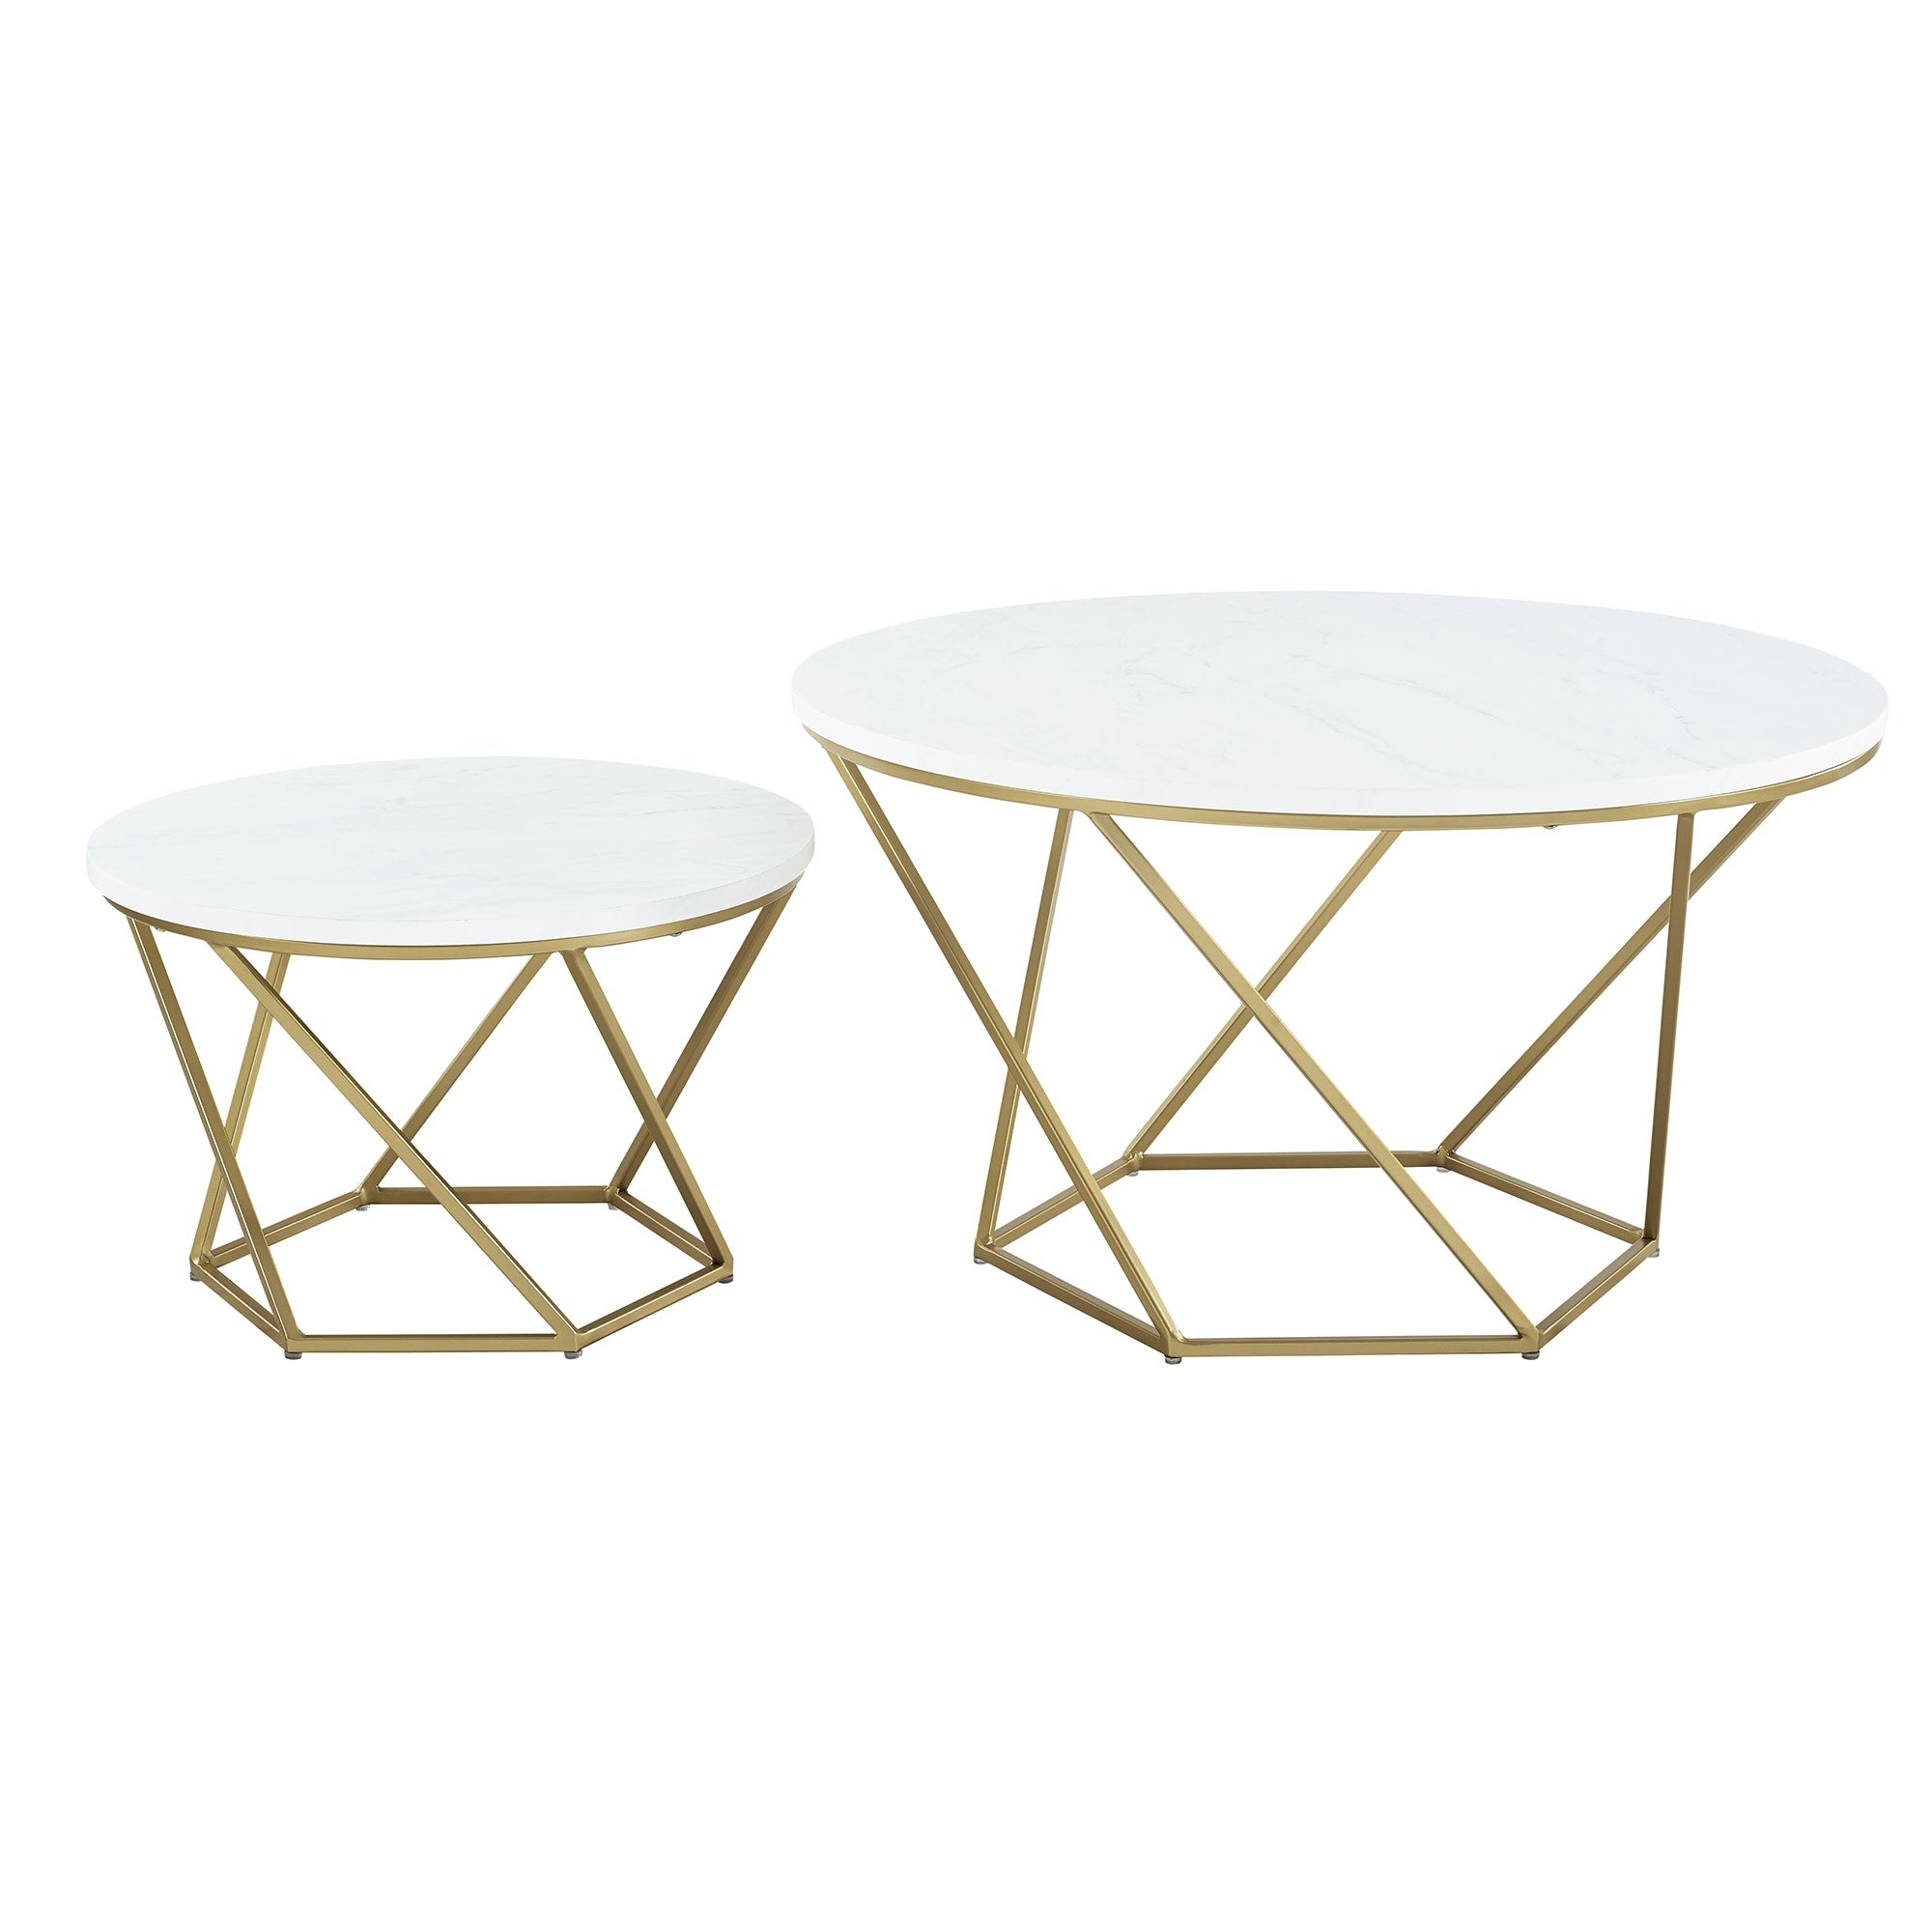 Delacora We Bdf28clrgm Two Piece Marble Top Metal Accent Table White With Gold